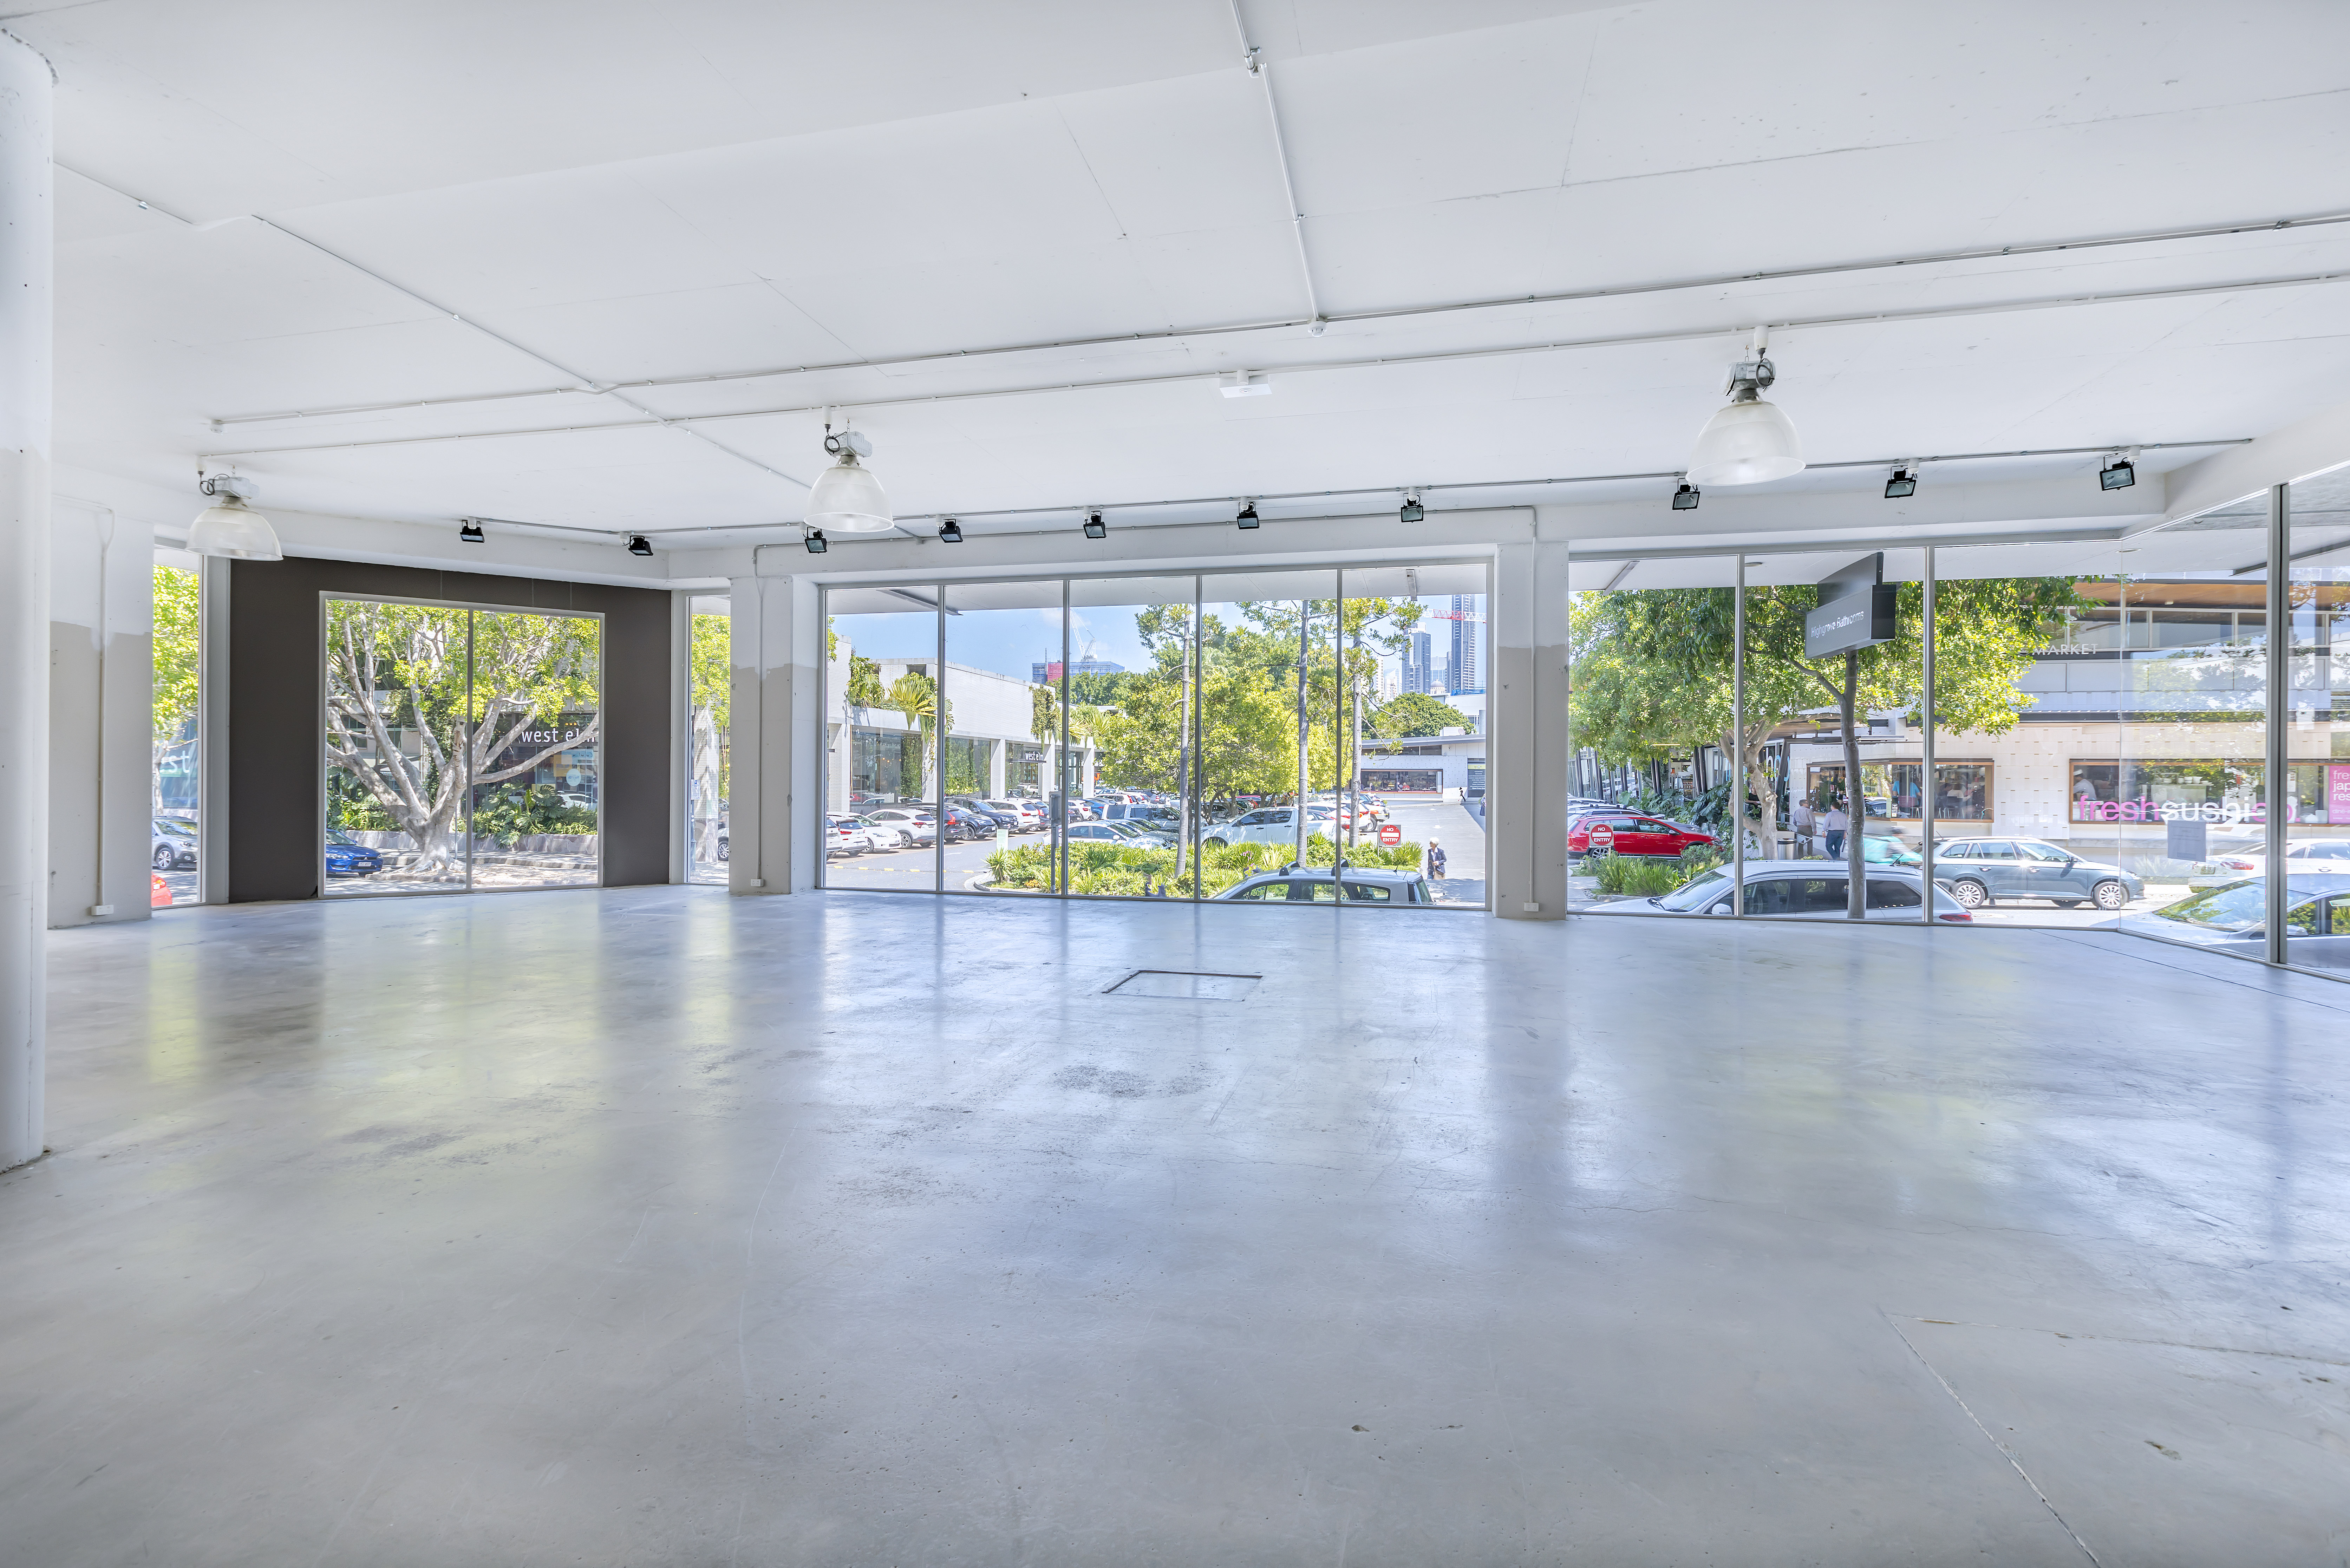 Fortitude Valley commercial retail tenancies in James Street Precinct - Brisbane property real estate agency - Retail showroom next to James Street Markets, West Elm, Pottery Barn